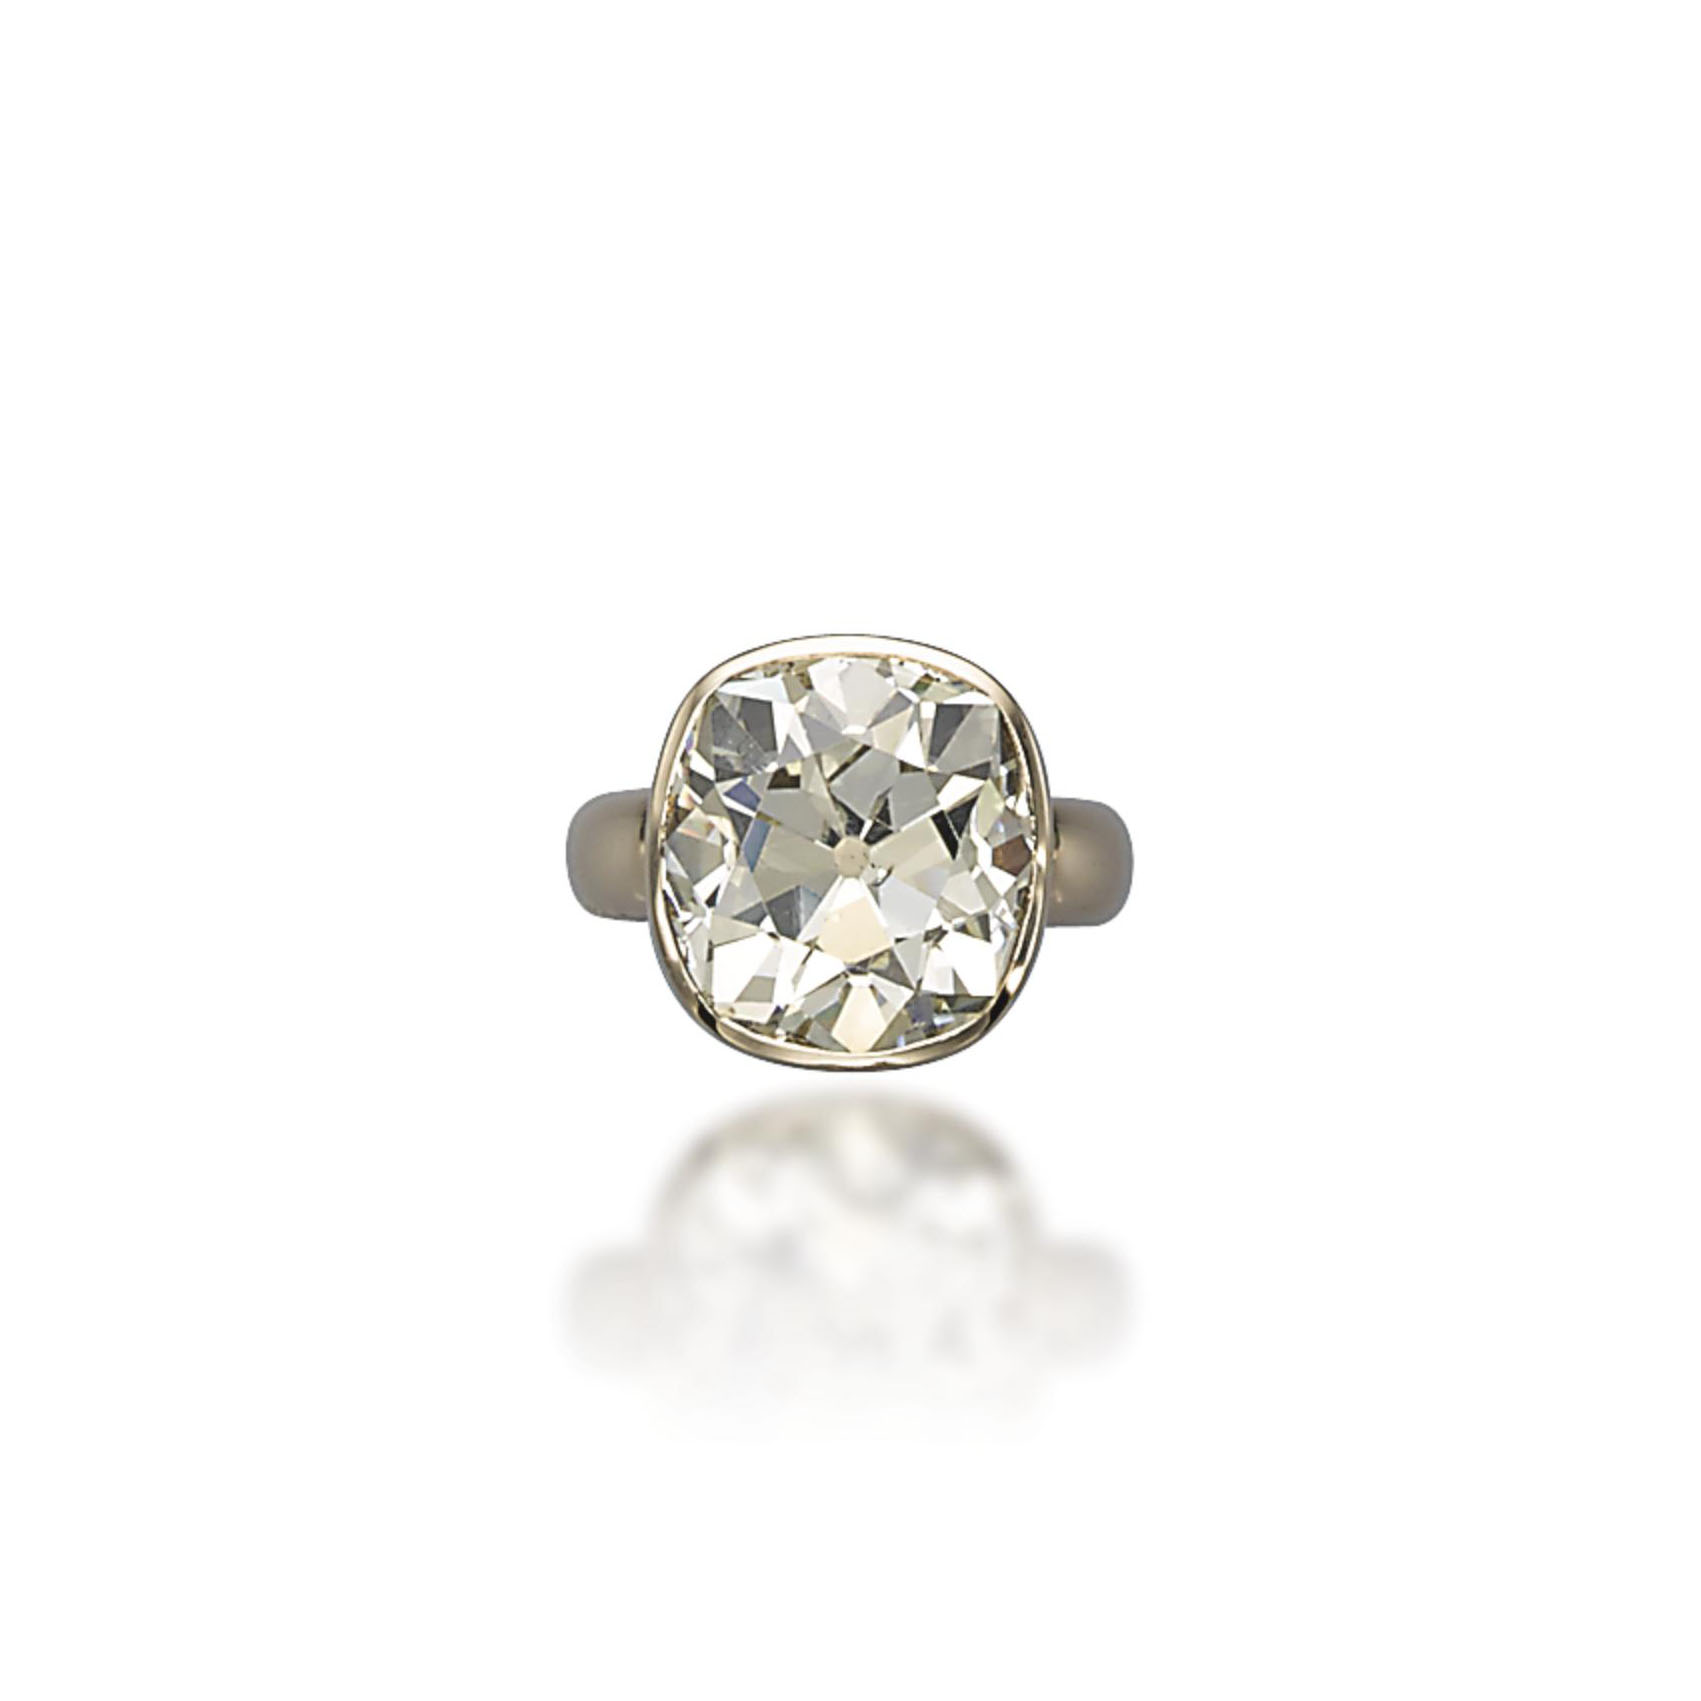 A DIAMOND RING, BY VHERNIER